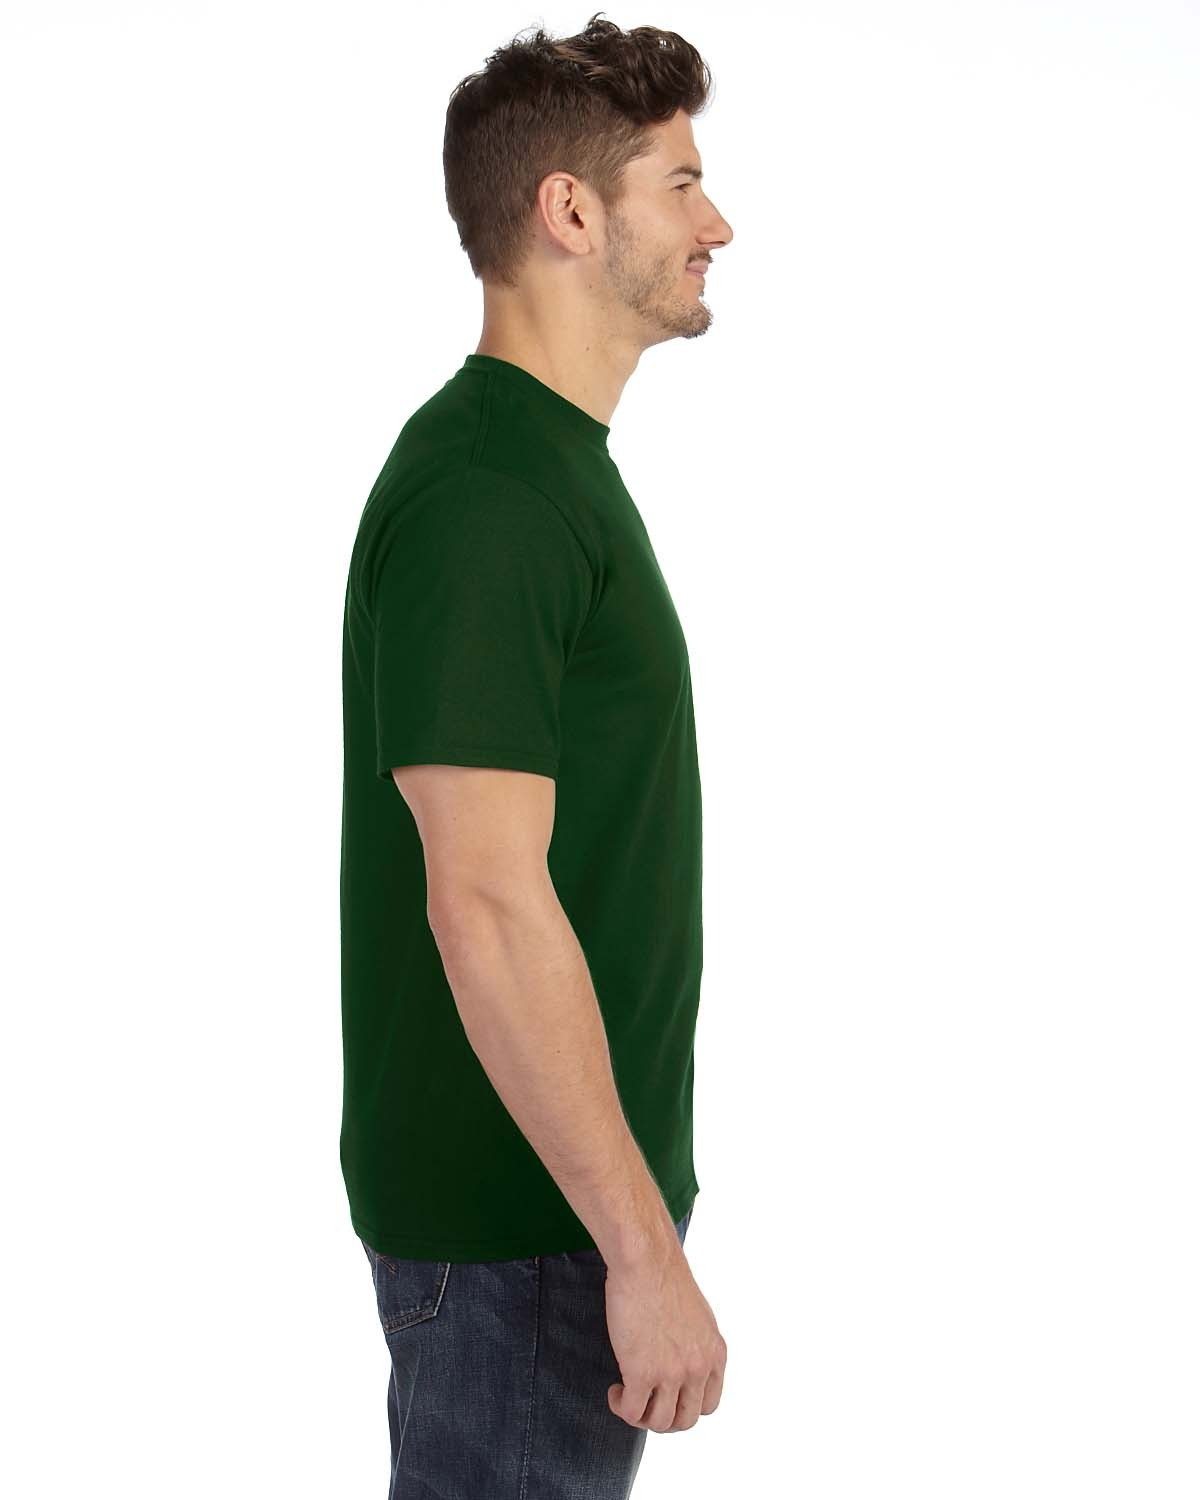 783AN Anvil FOREST GREEN